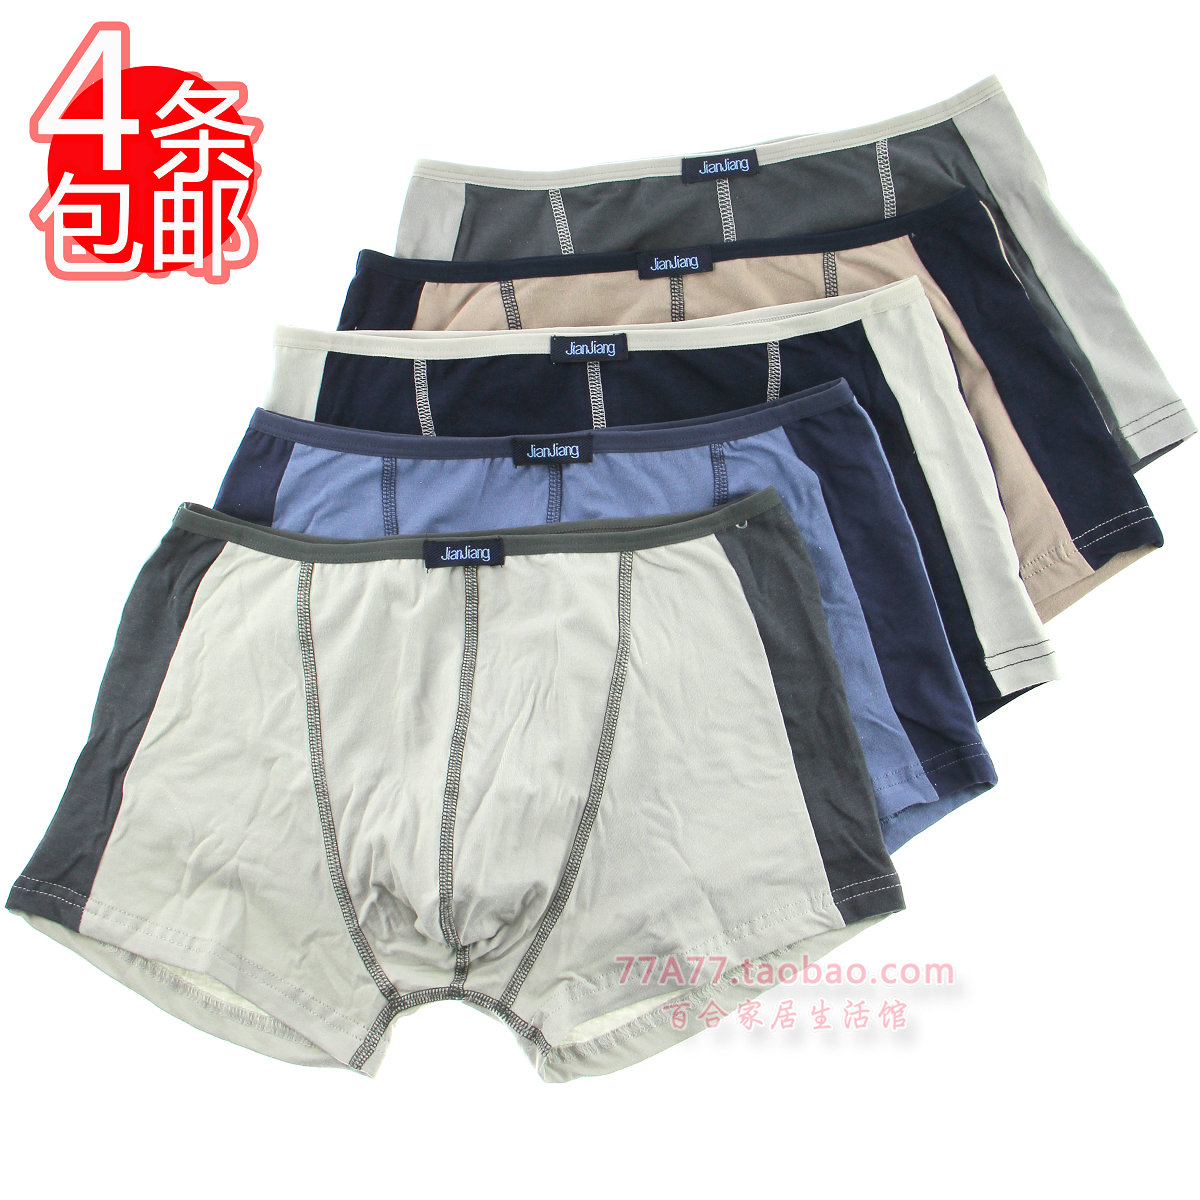 Sprinter male panties trunk stretch cotton 100% cotton solid color shorts